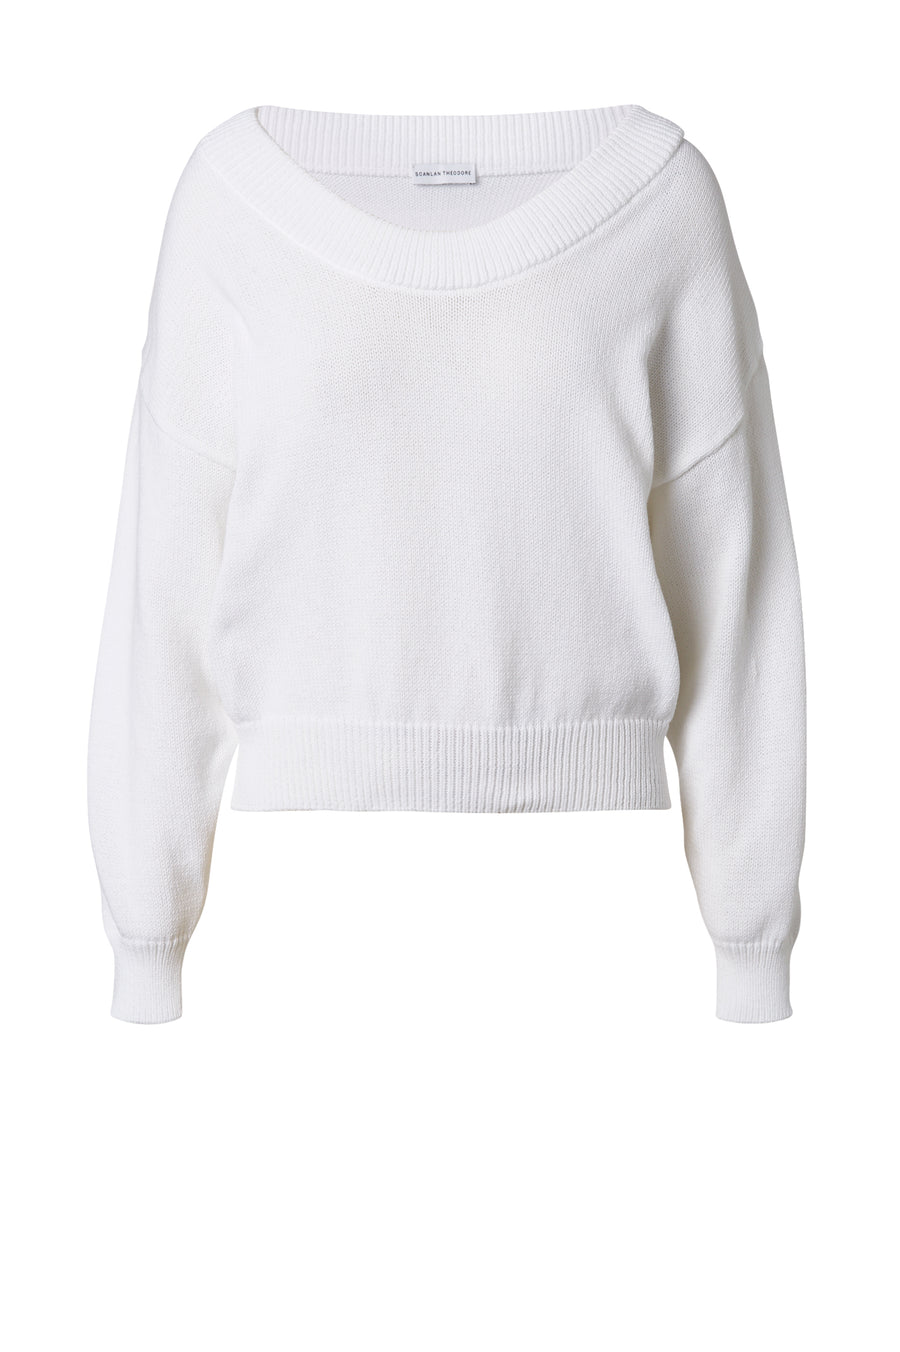 Our Cotton Sparkle Sweater embodies understated comfort and style.